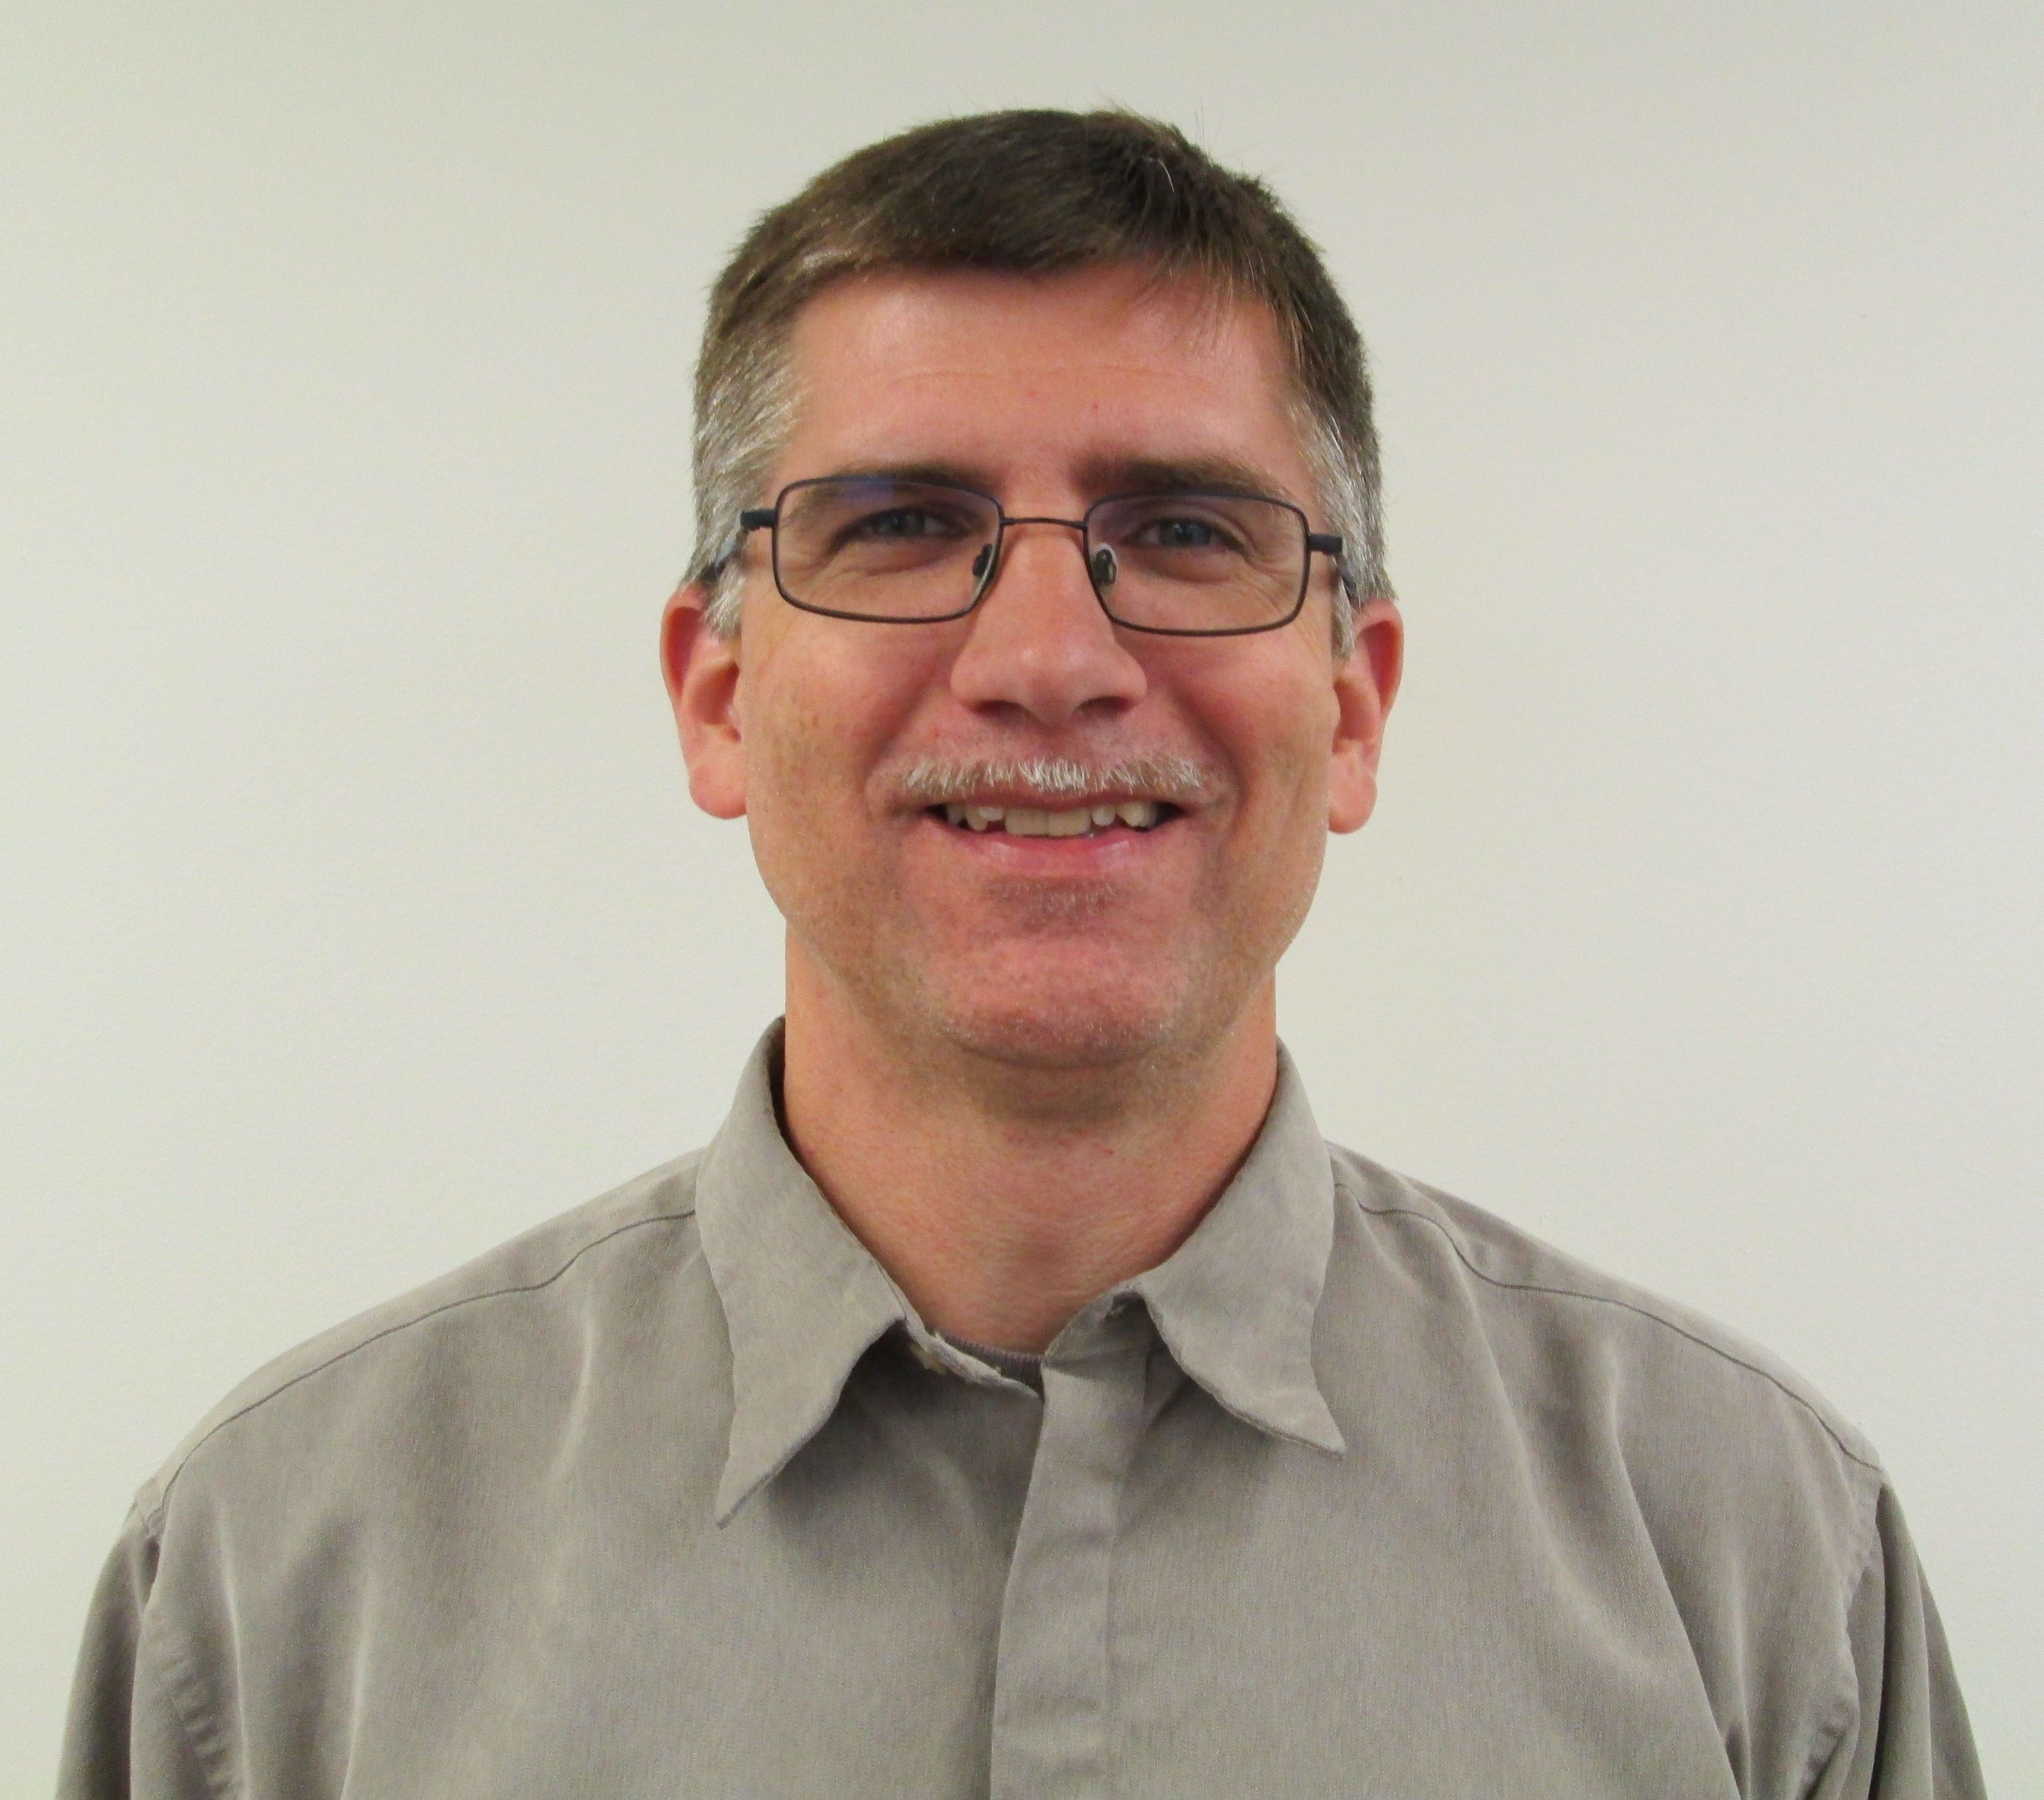 Paul Drerup - Operations Manager